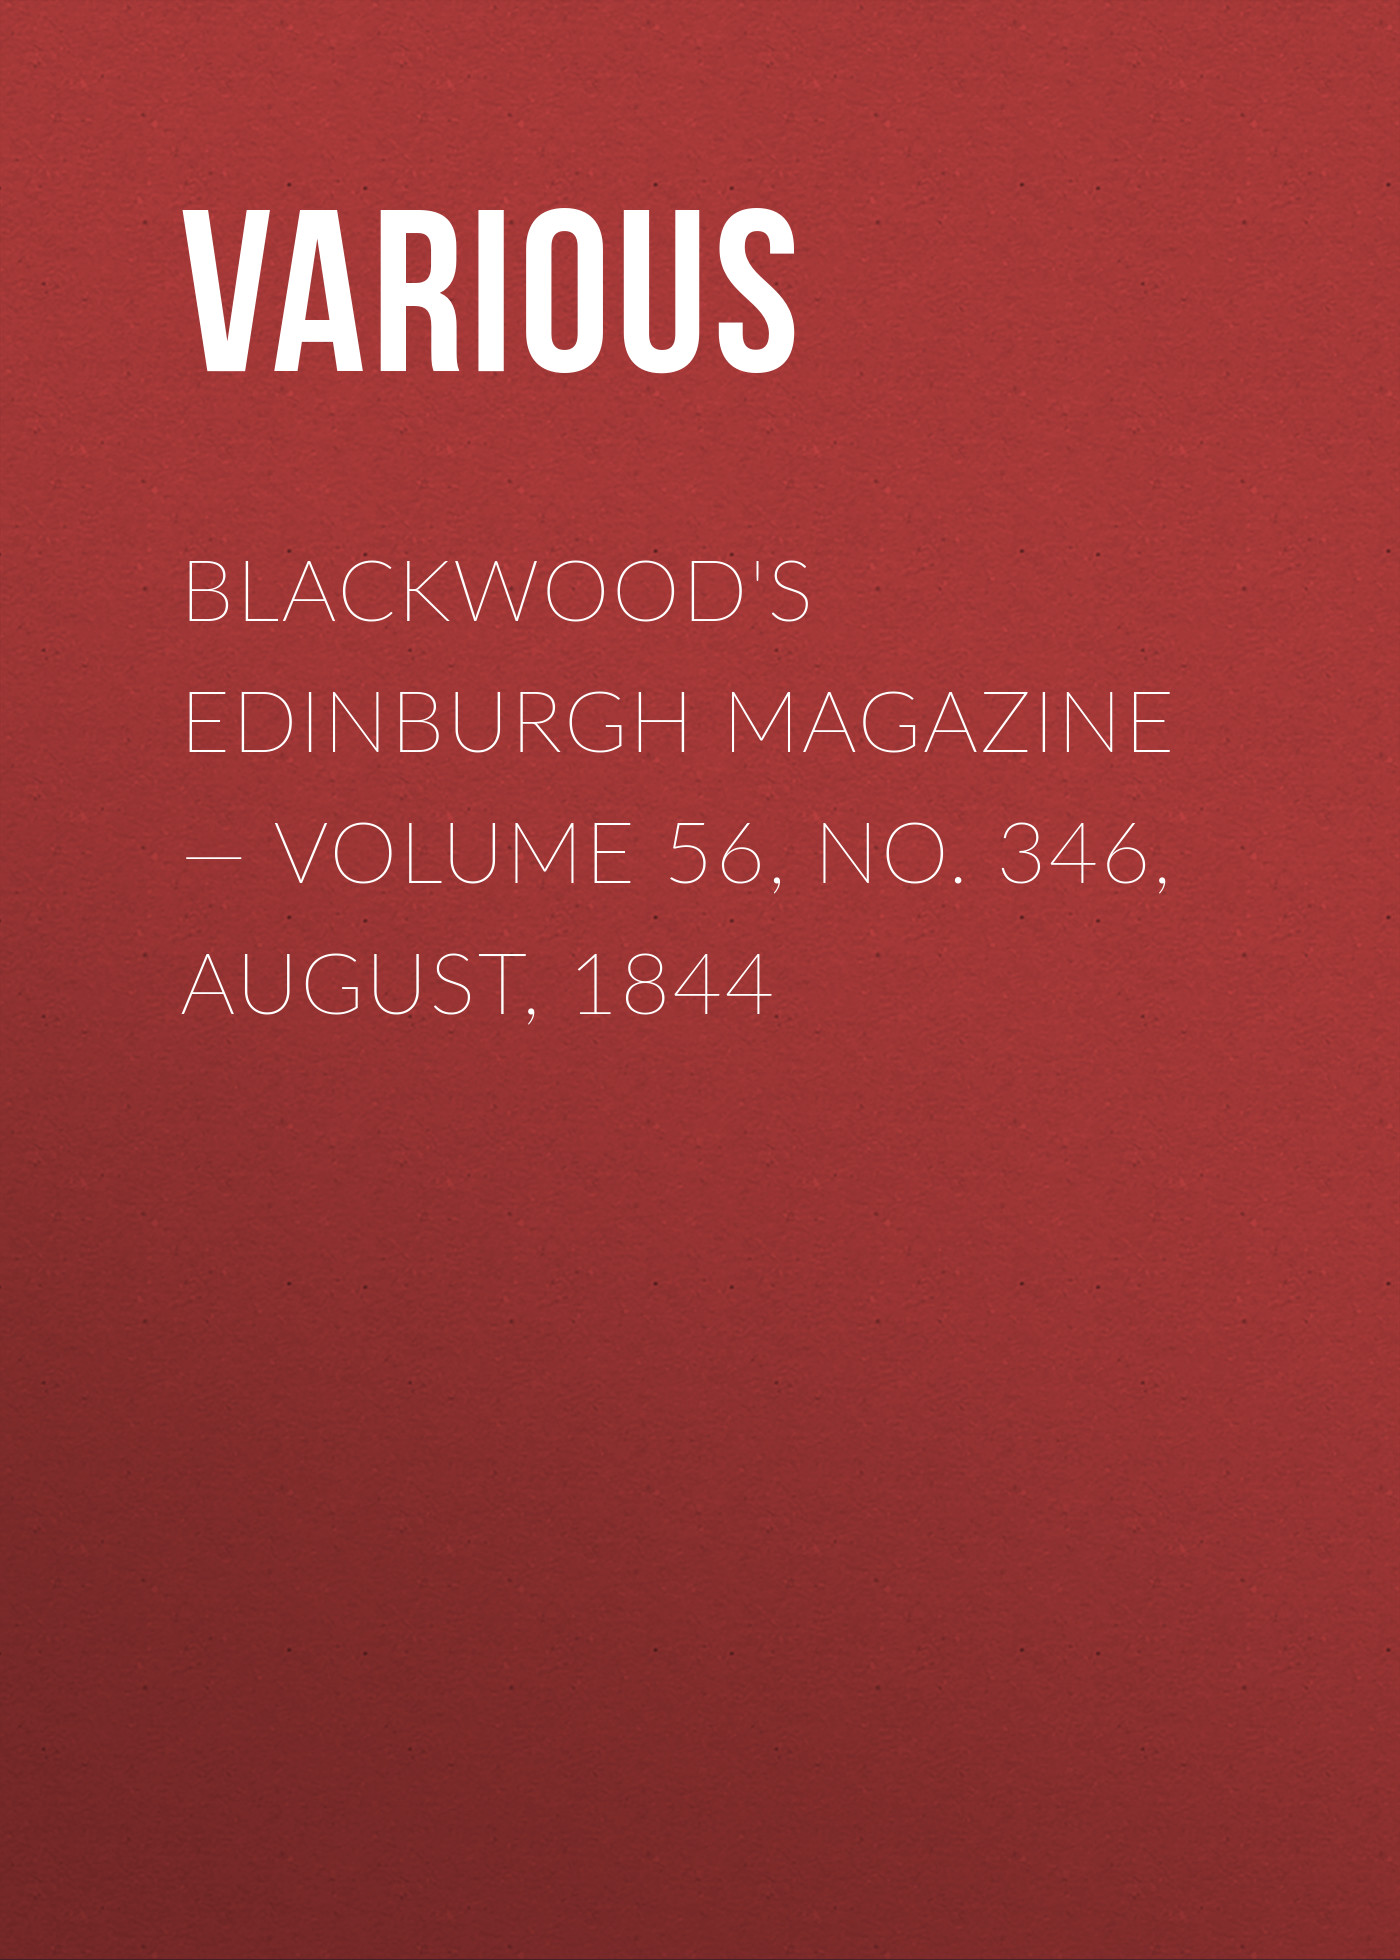 Various Blackwood's Edinburgh Magazine — Volume 56, No. 346, August, 1844